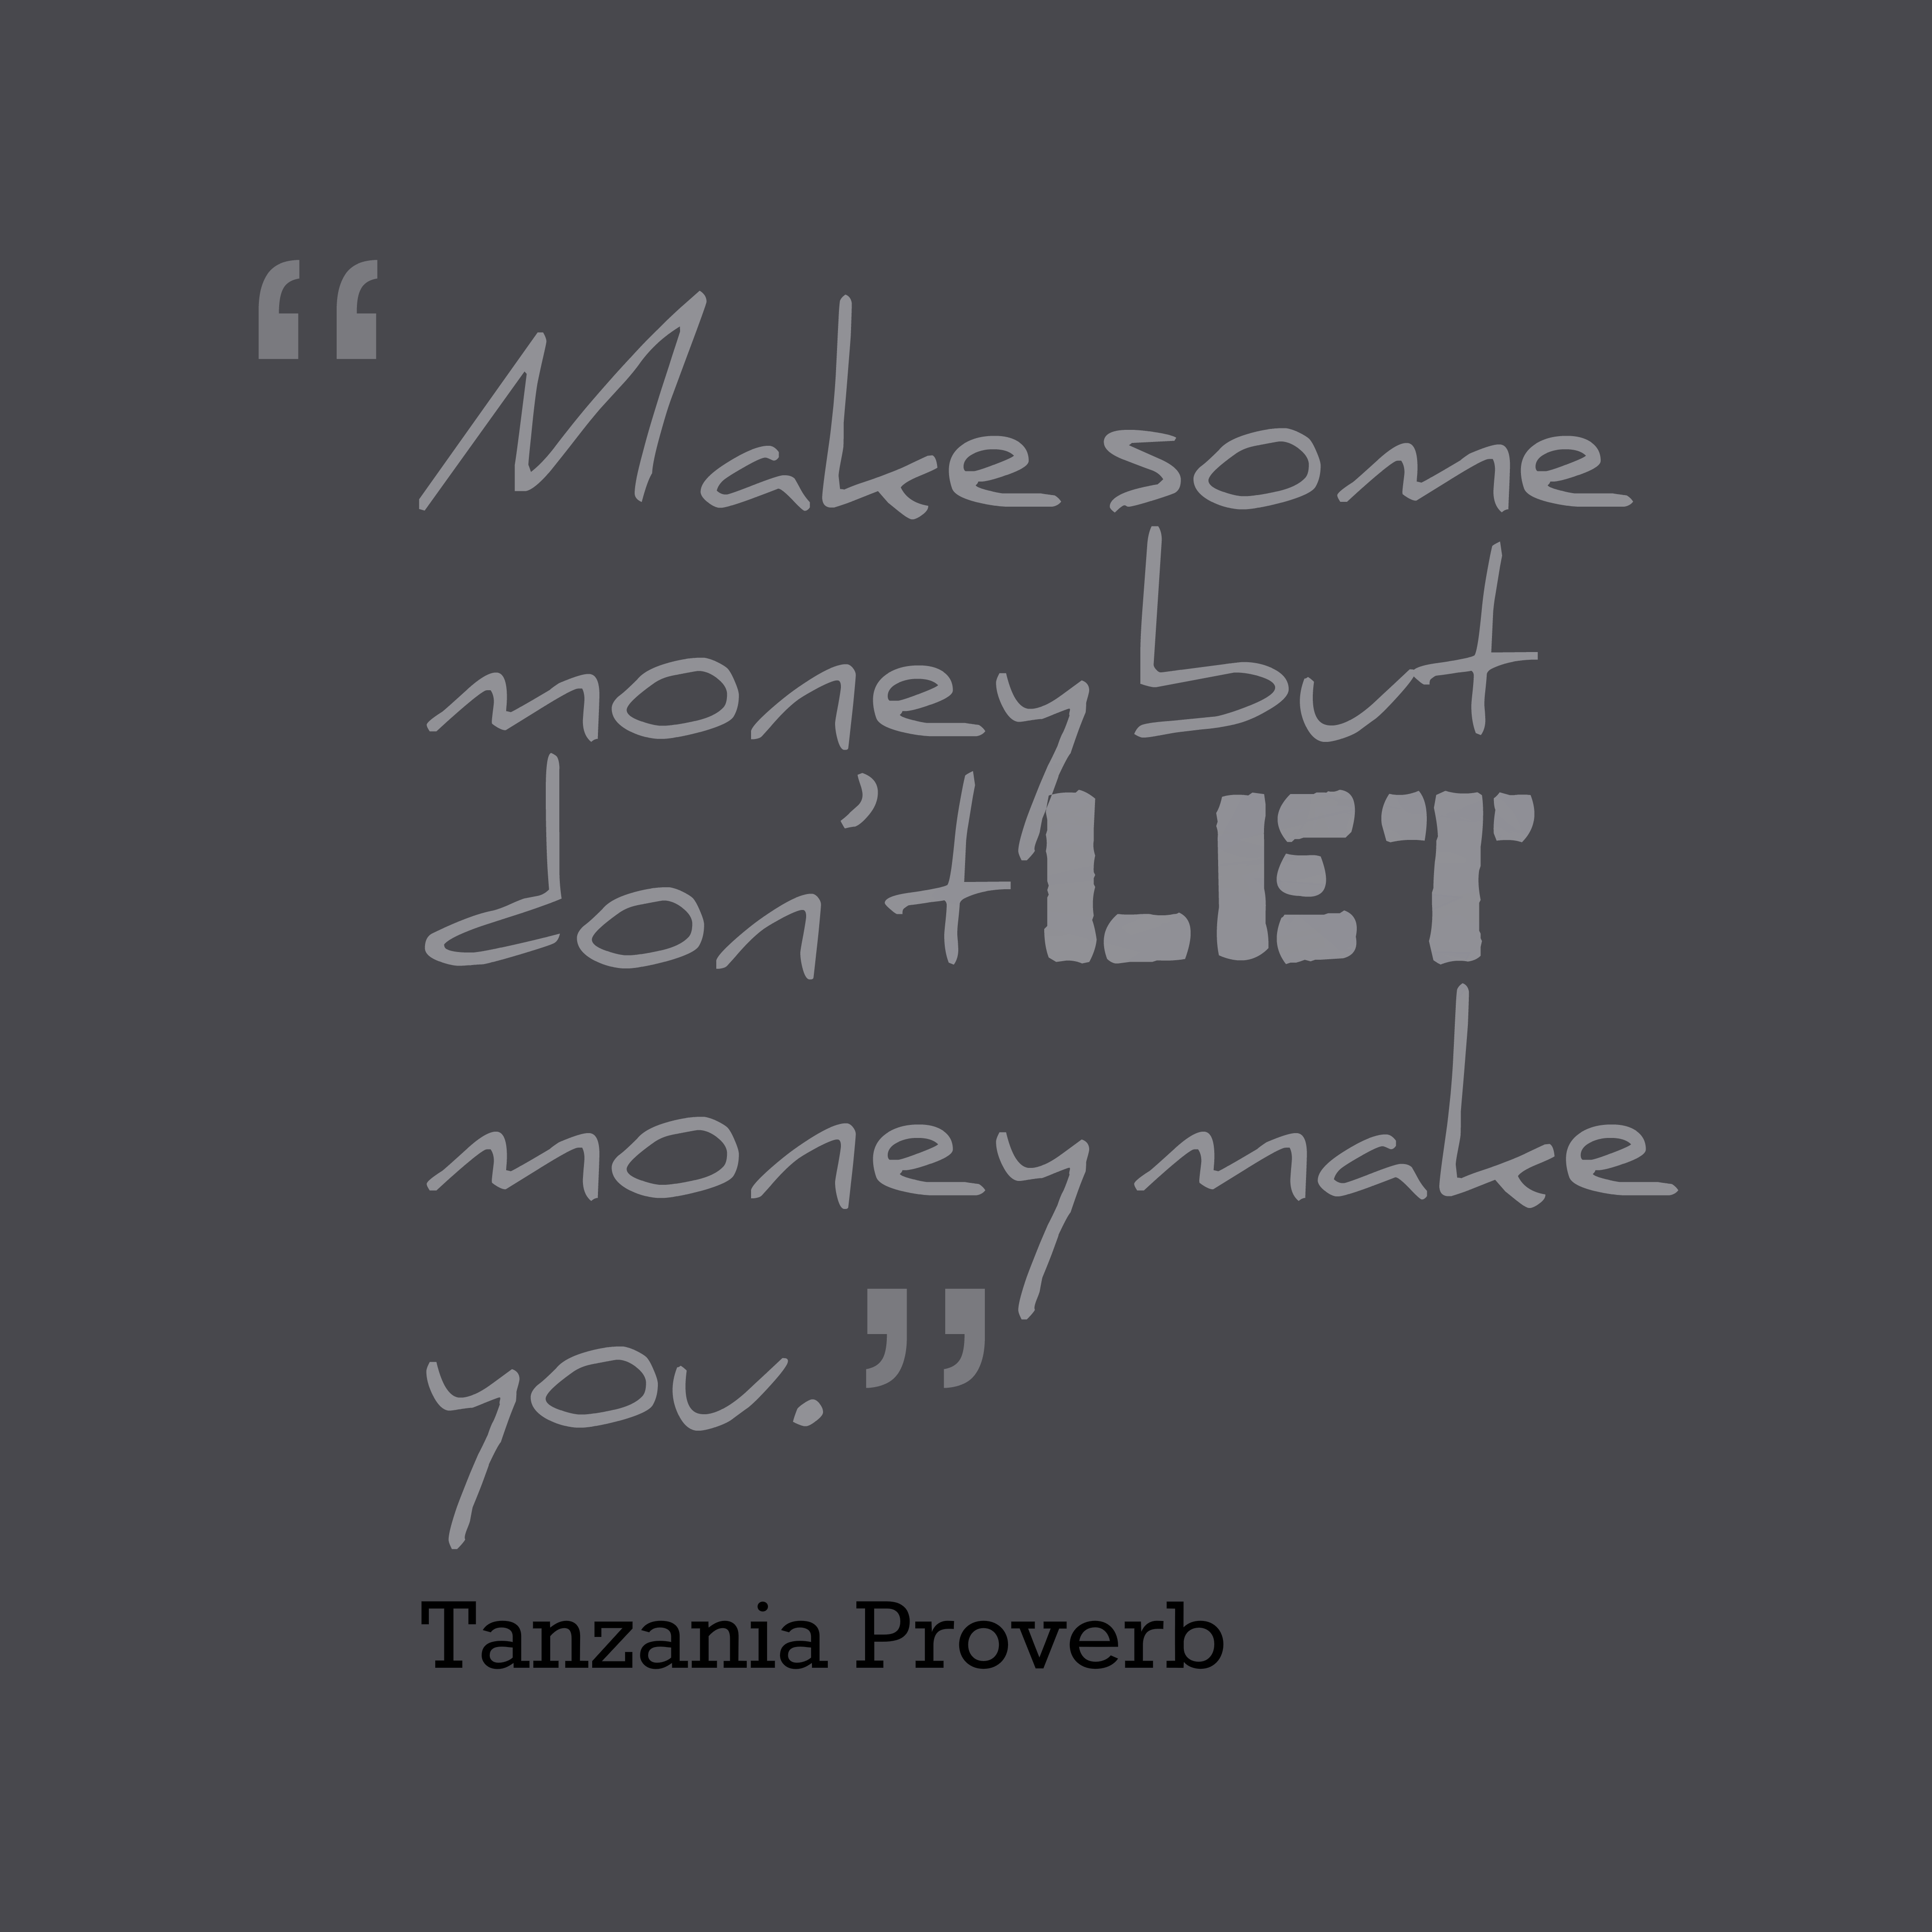 Tanzania Proverb About Wealth.